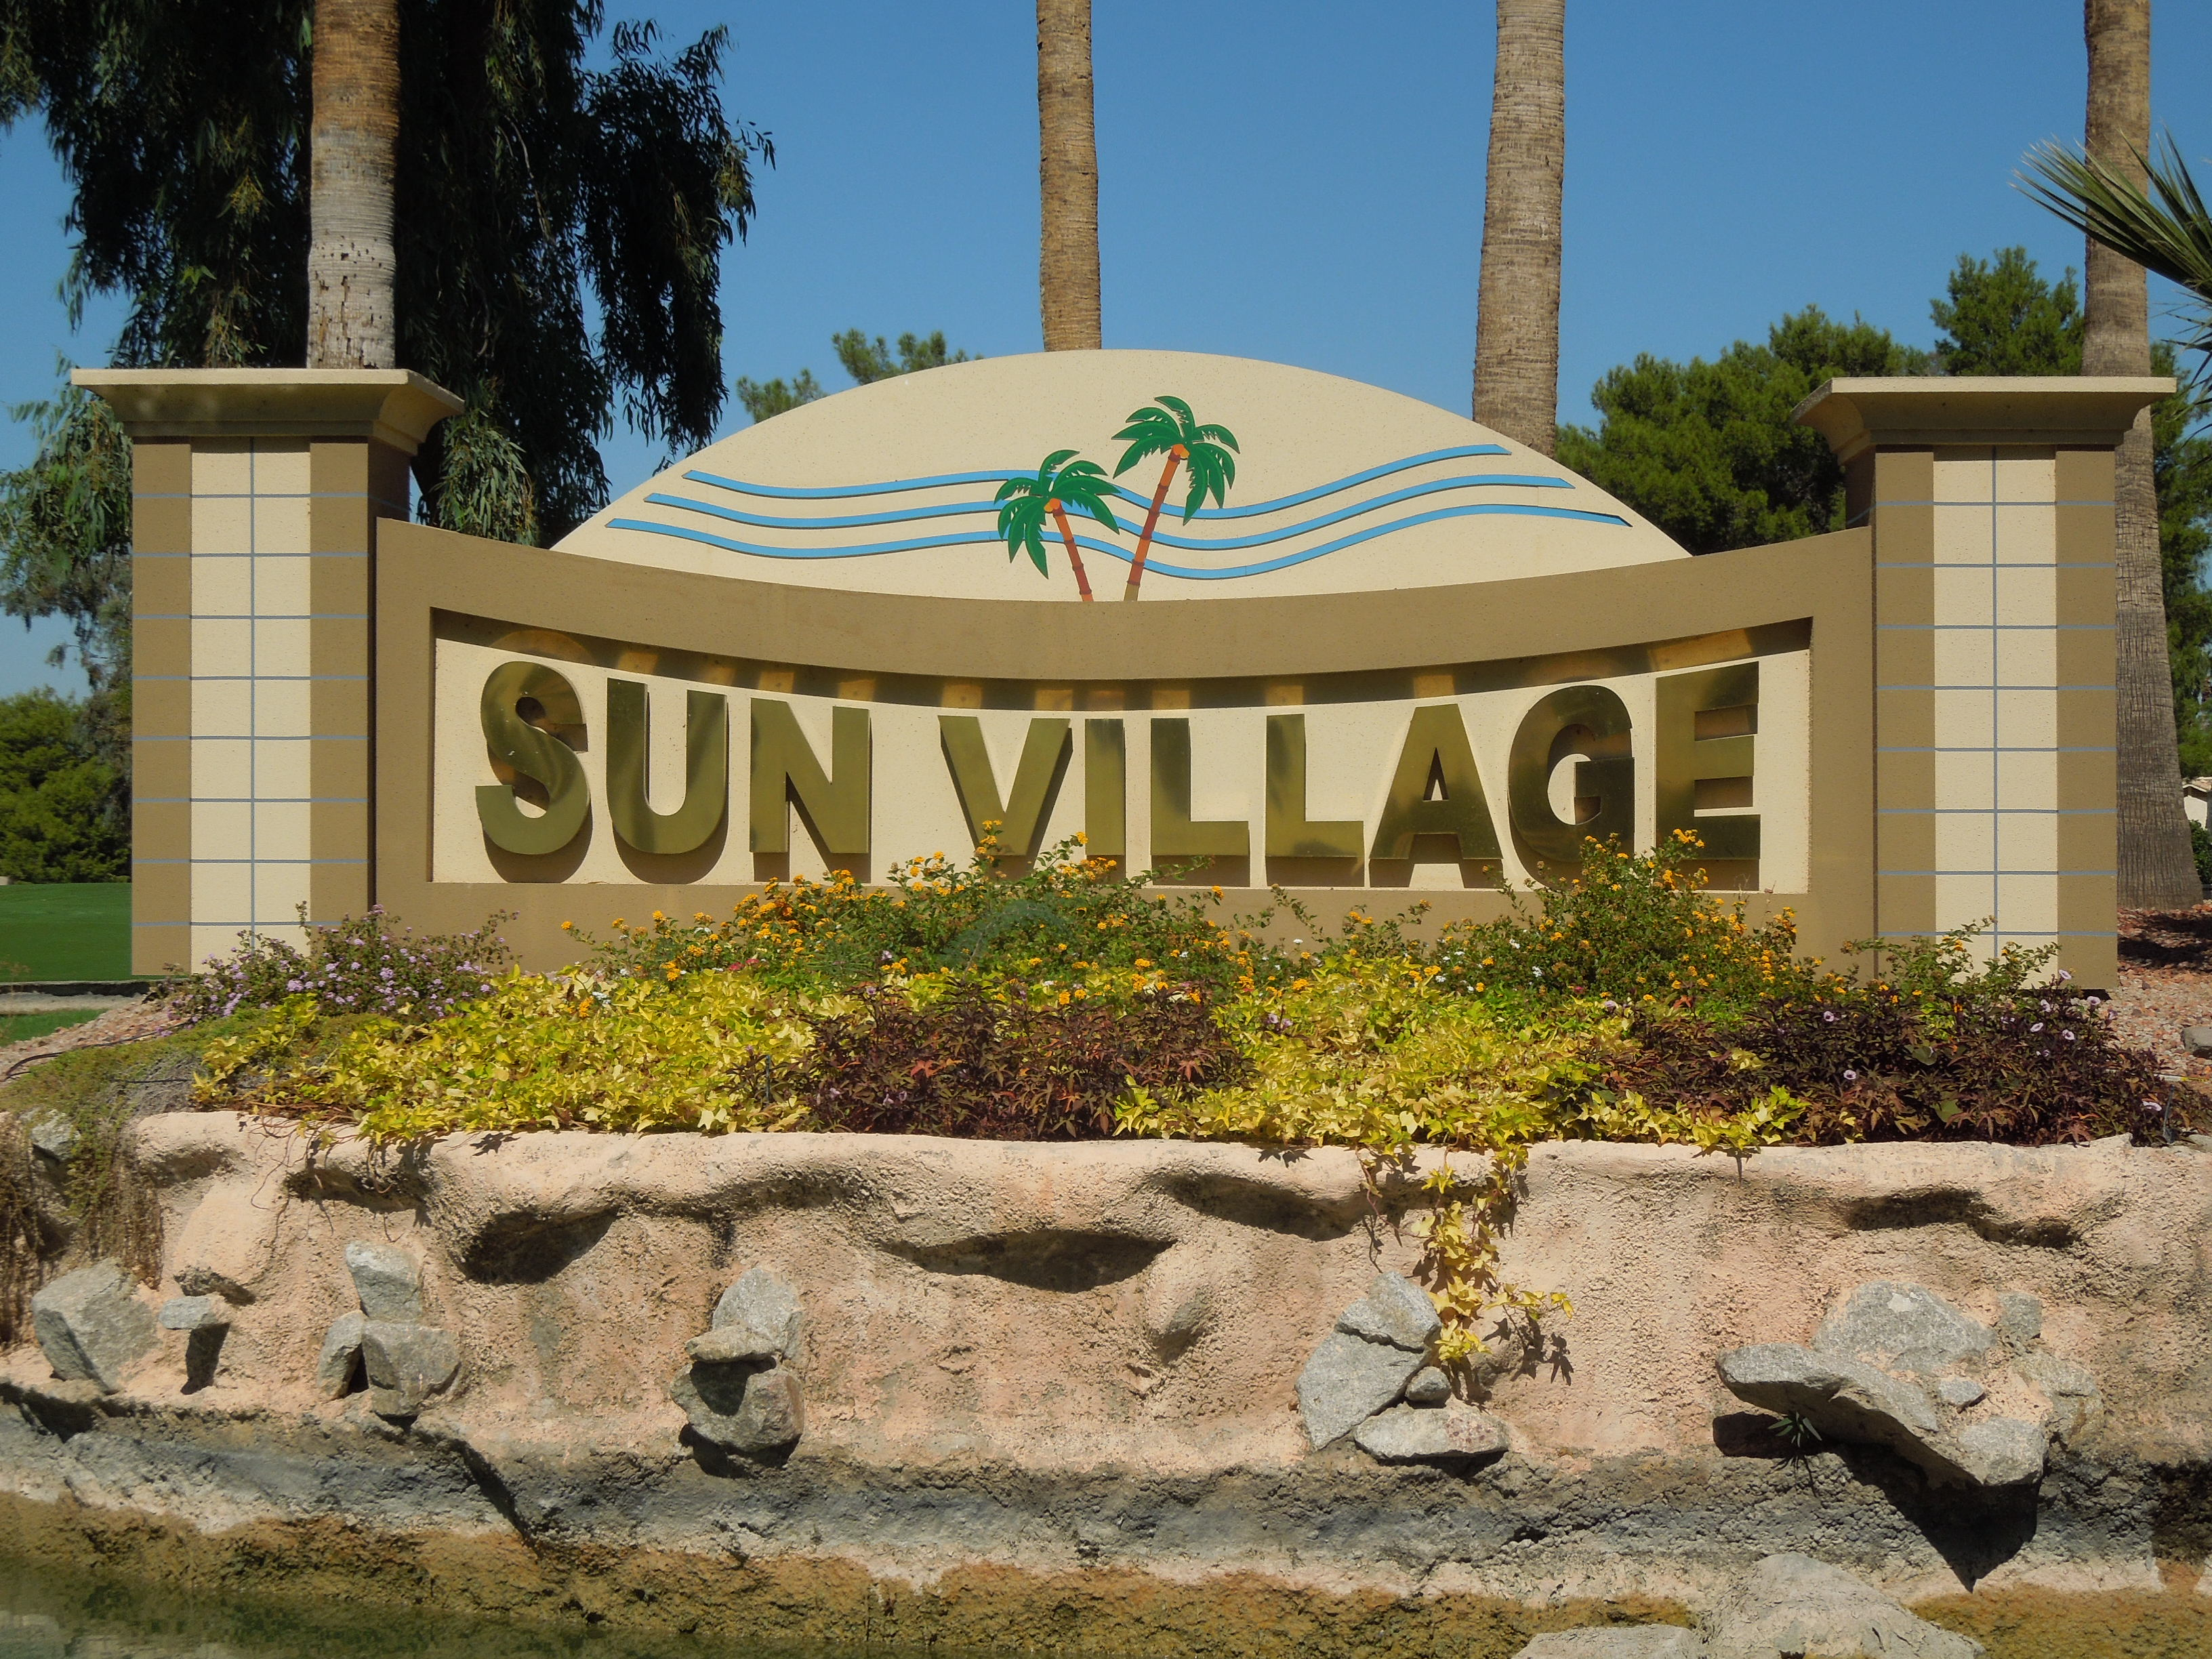 Real Estate For Sale In Sun Village Arizona Town Cryers